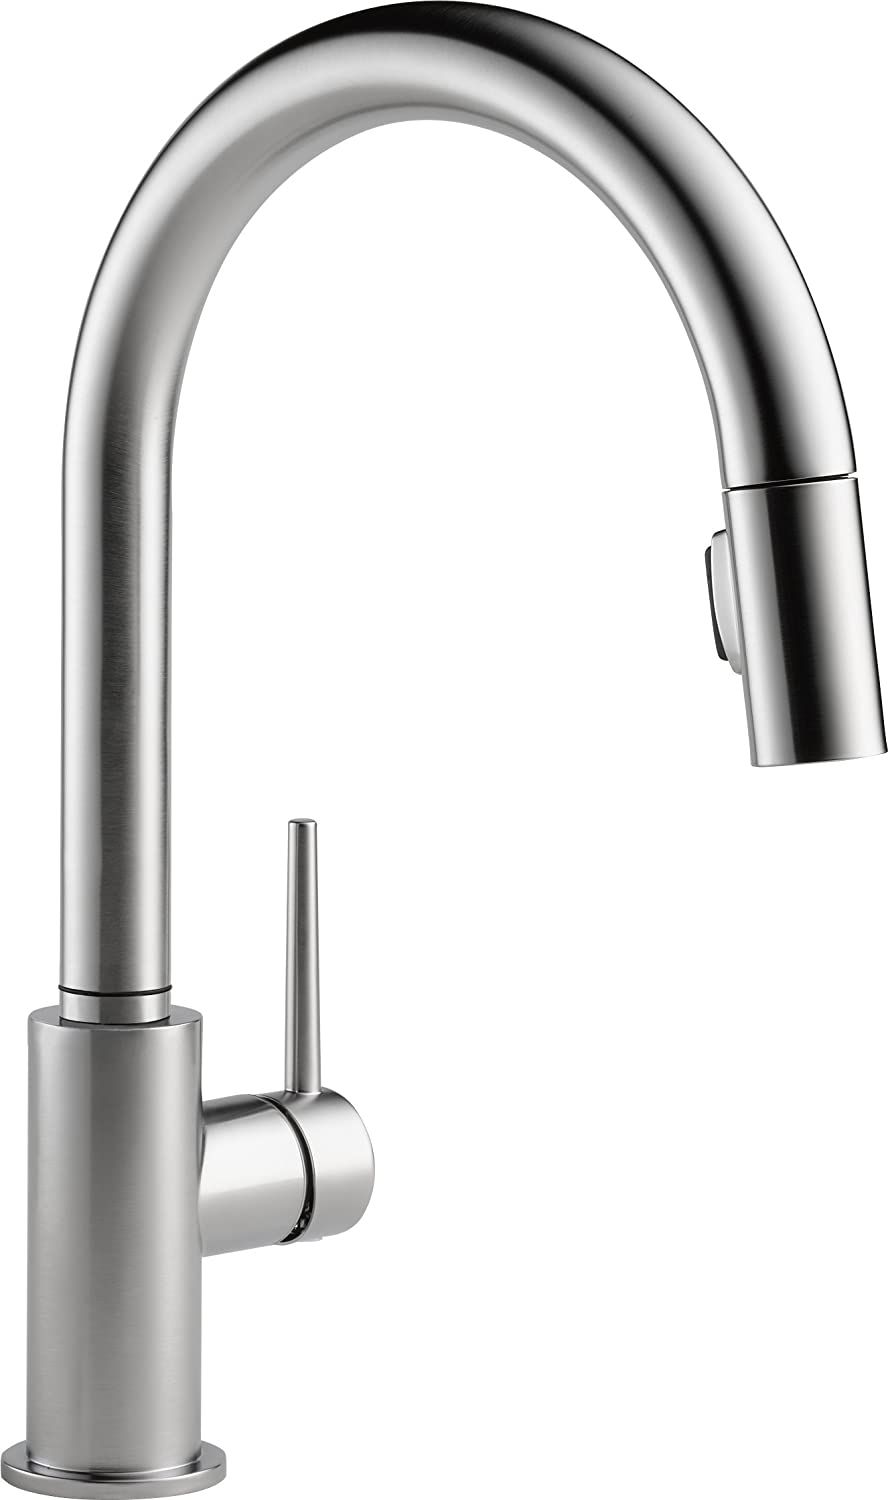 What\'s the Best Pull Down Kitchen Faucet? | Kitchen Faucets Hub